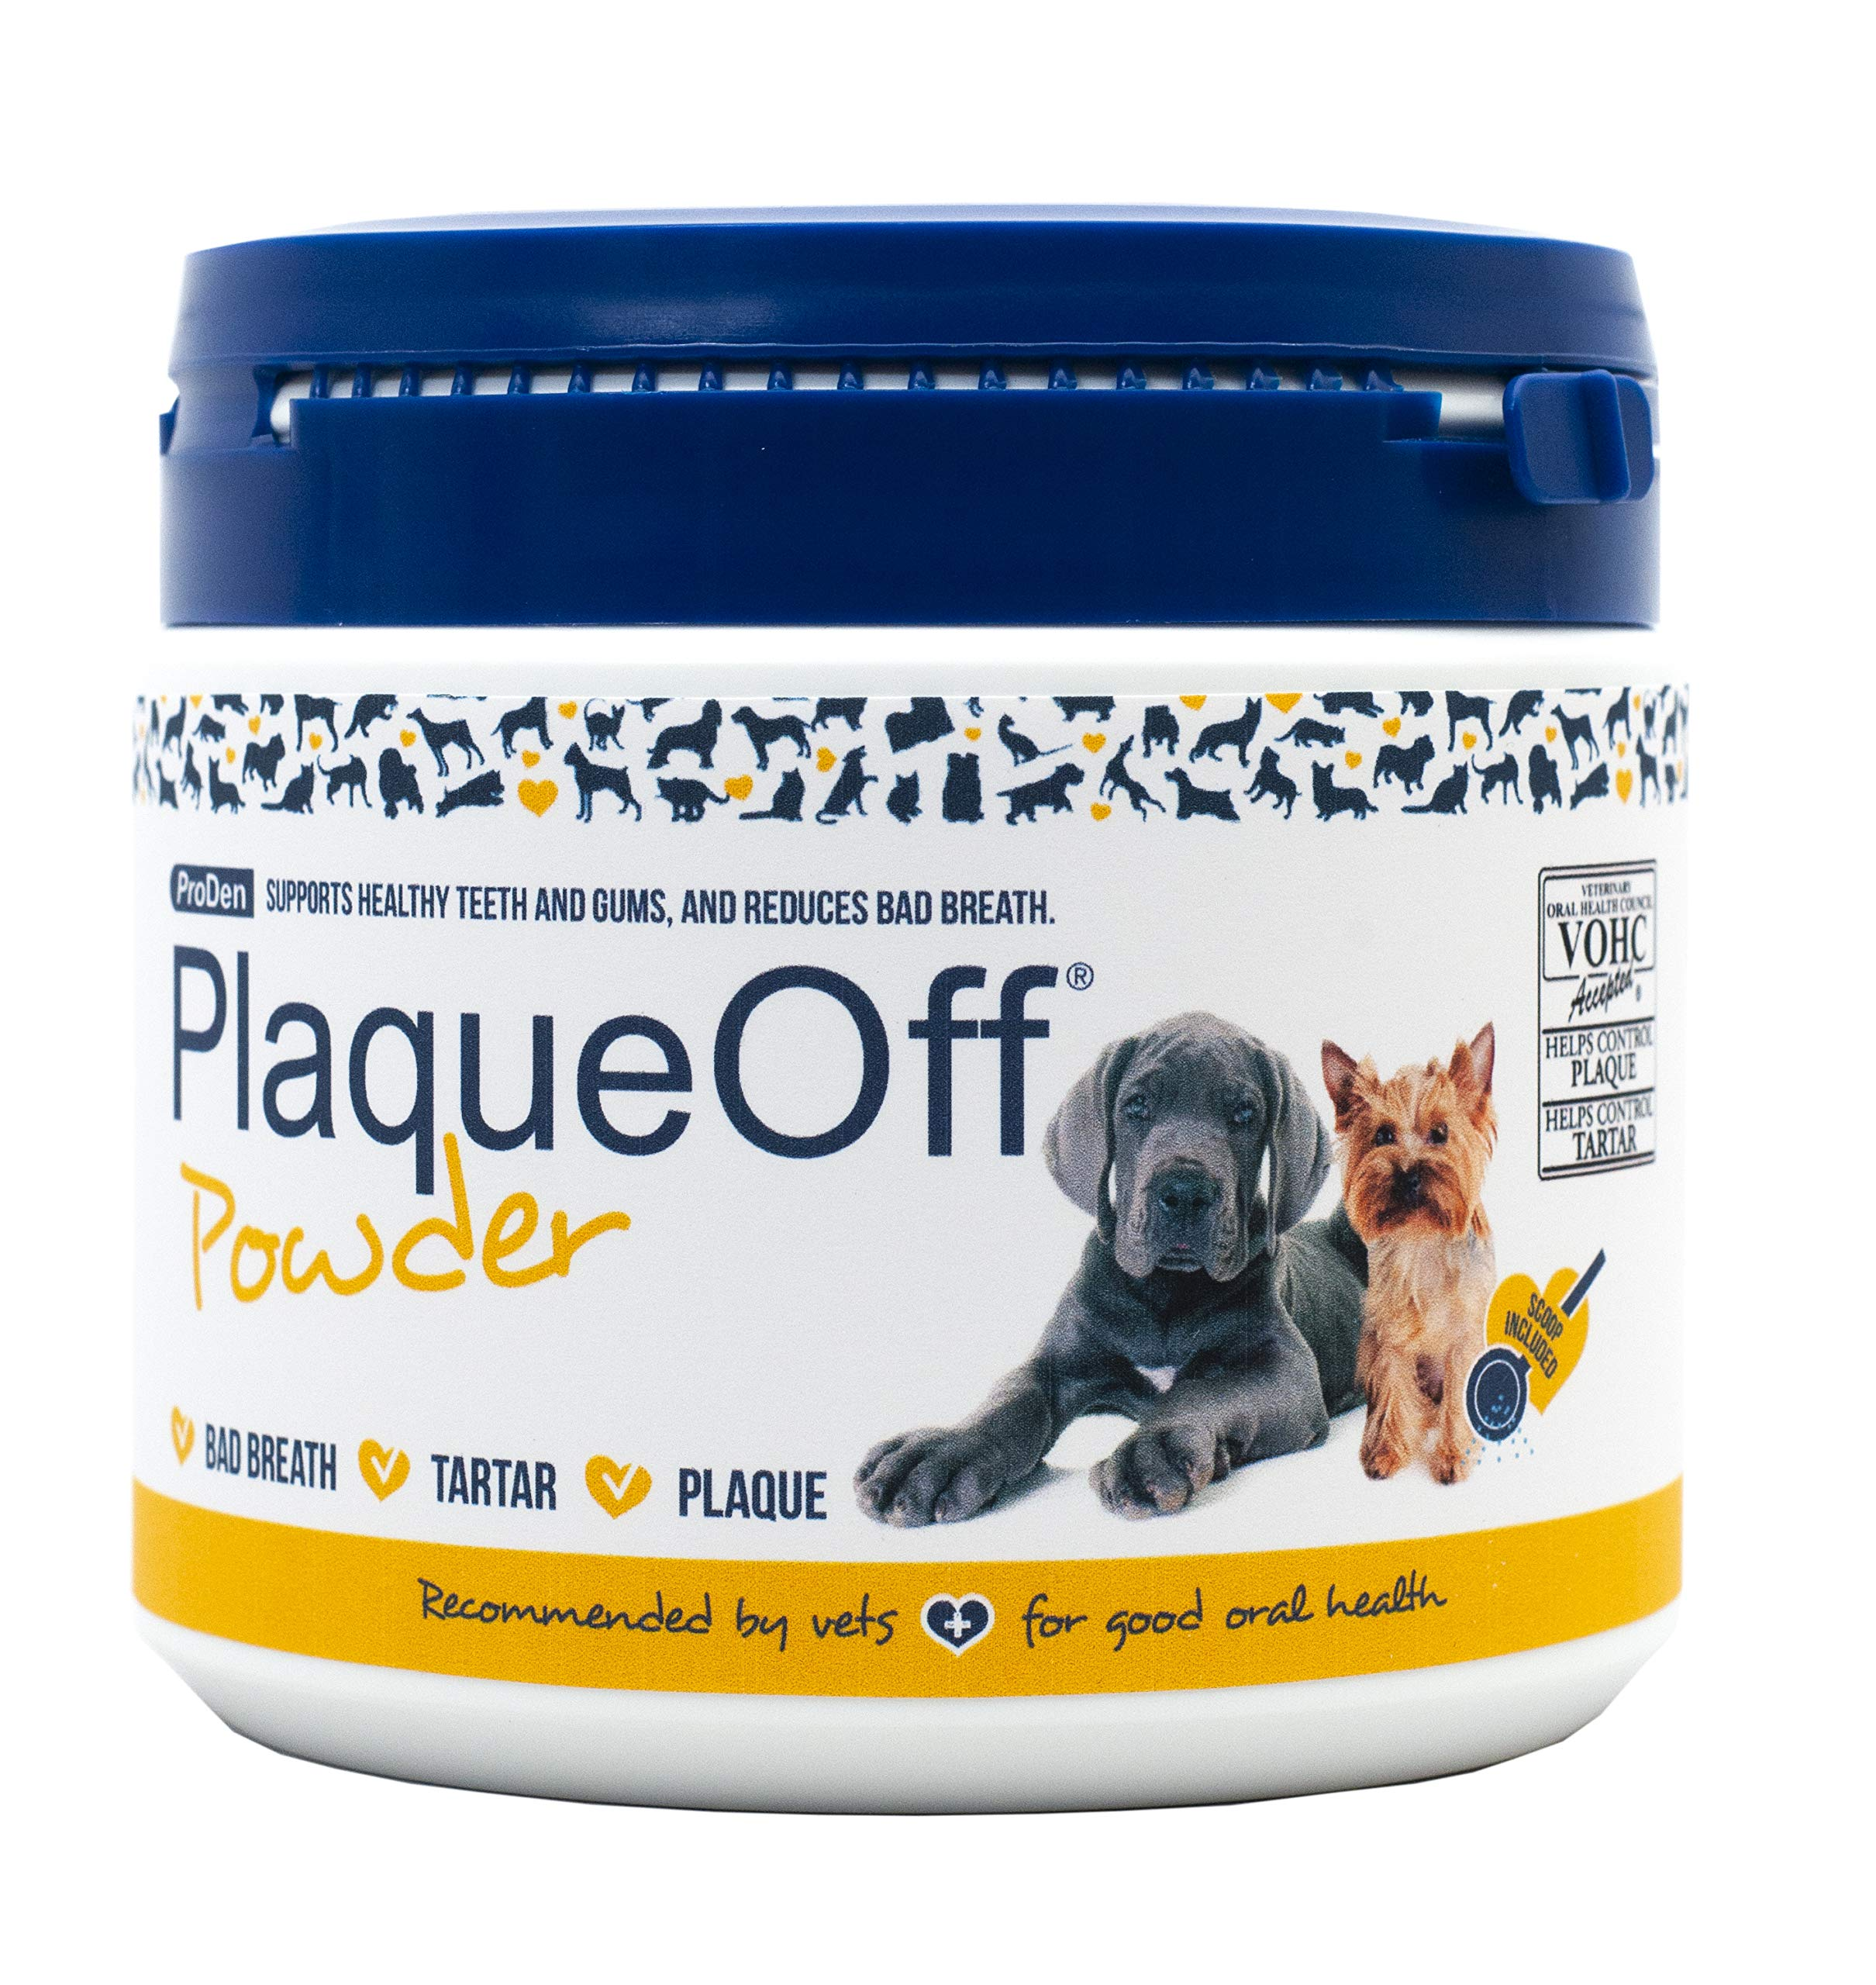 Proden PlaqueOff Dental Care for Dogs and Cats, 420gm by Proden